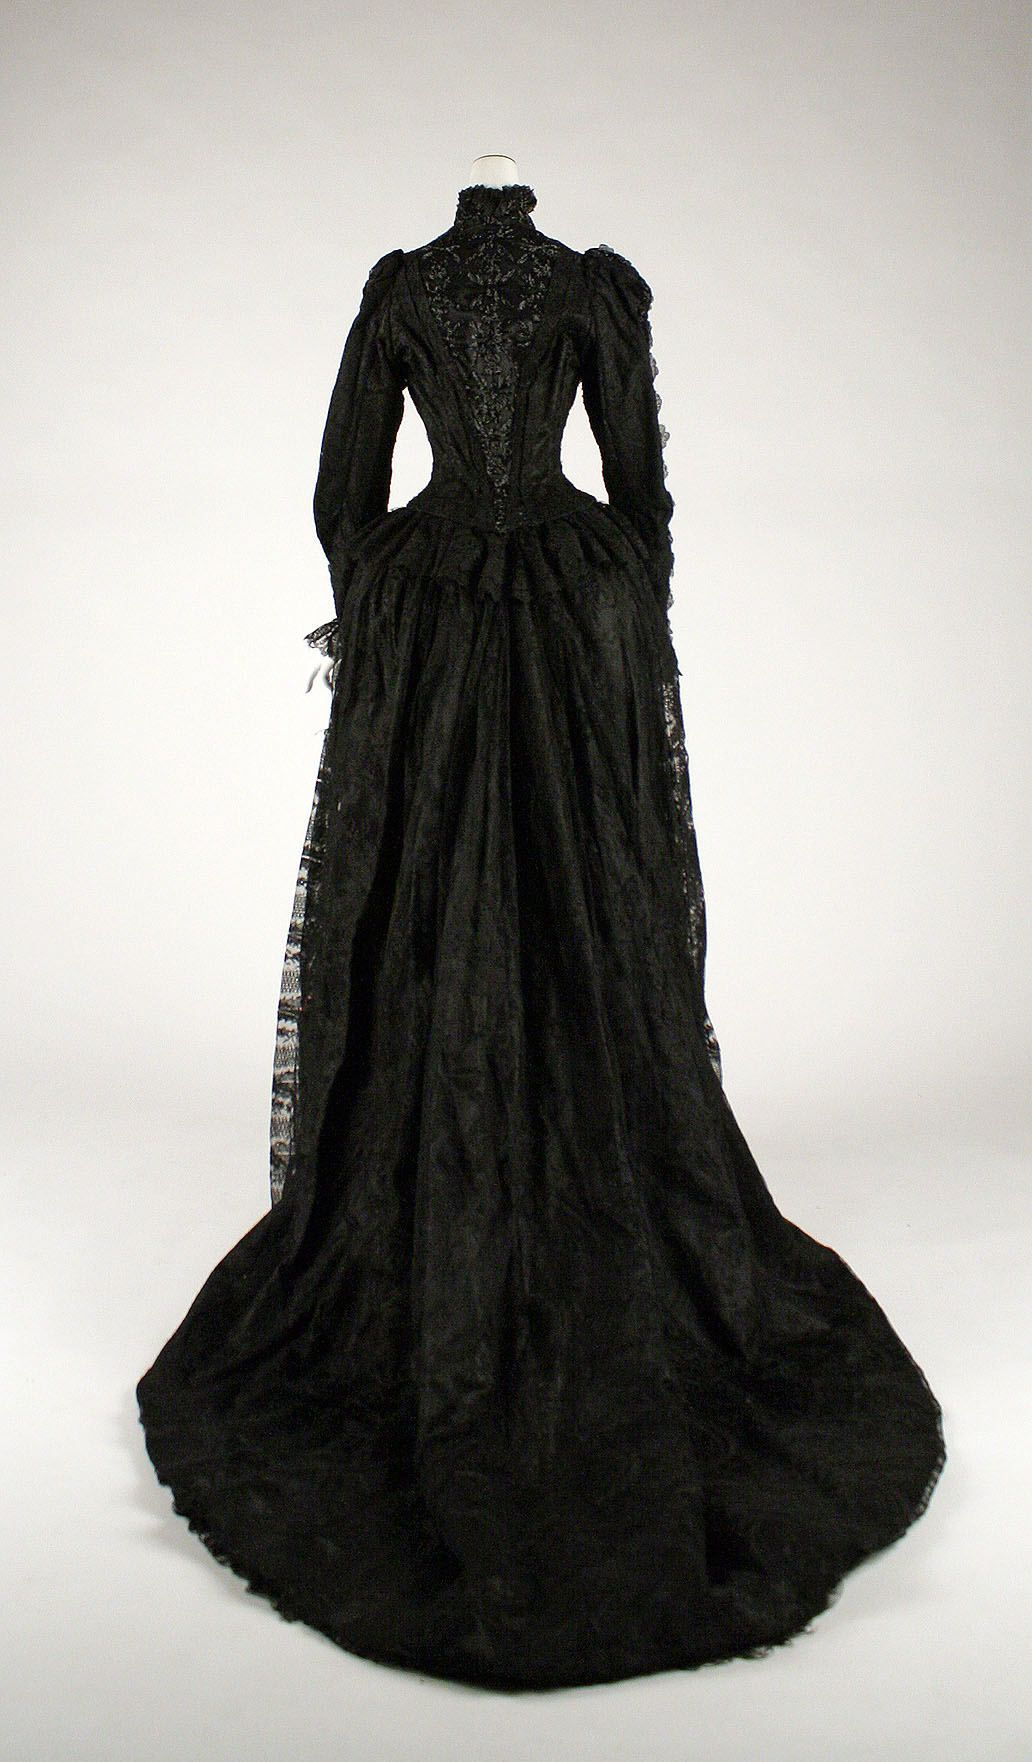 Wikivictorian On Twitter Historical Dresses Victorian Fashion Vintage Dresses [ 1762 x 1032 Pixel ]